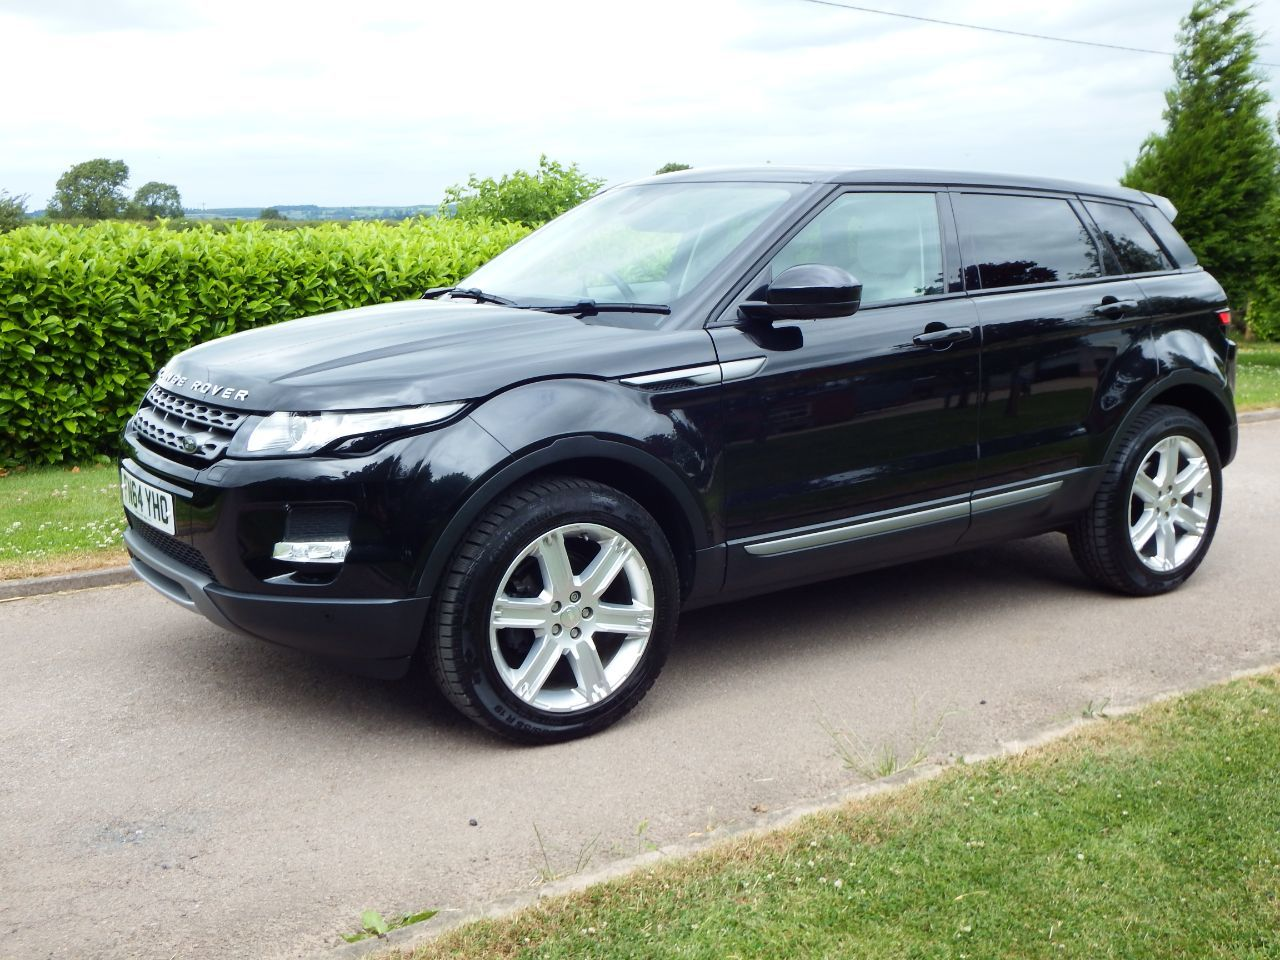 Land Rover Range Rover Evoque 2.2 SD4 Pure 5dr [Tech Pack] Estate Diesel Santorini Black